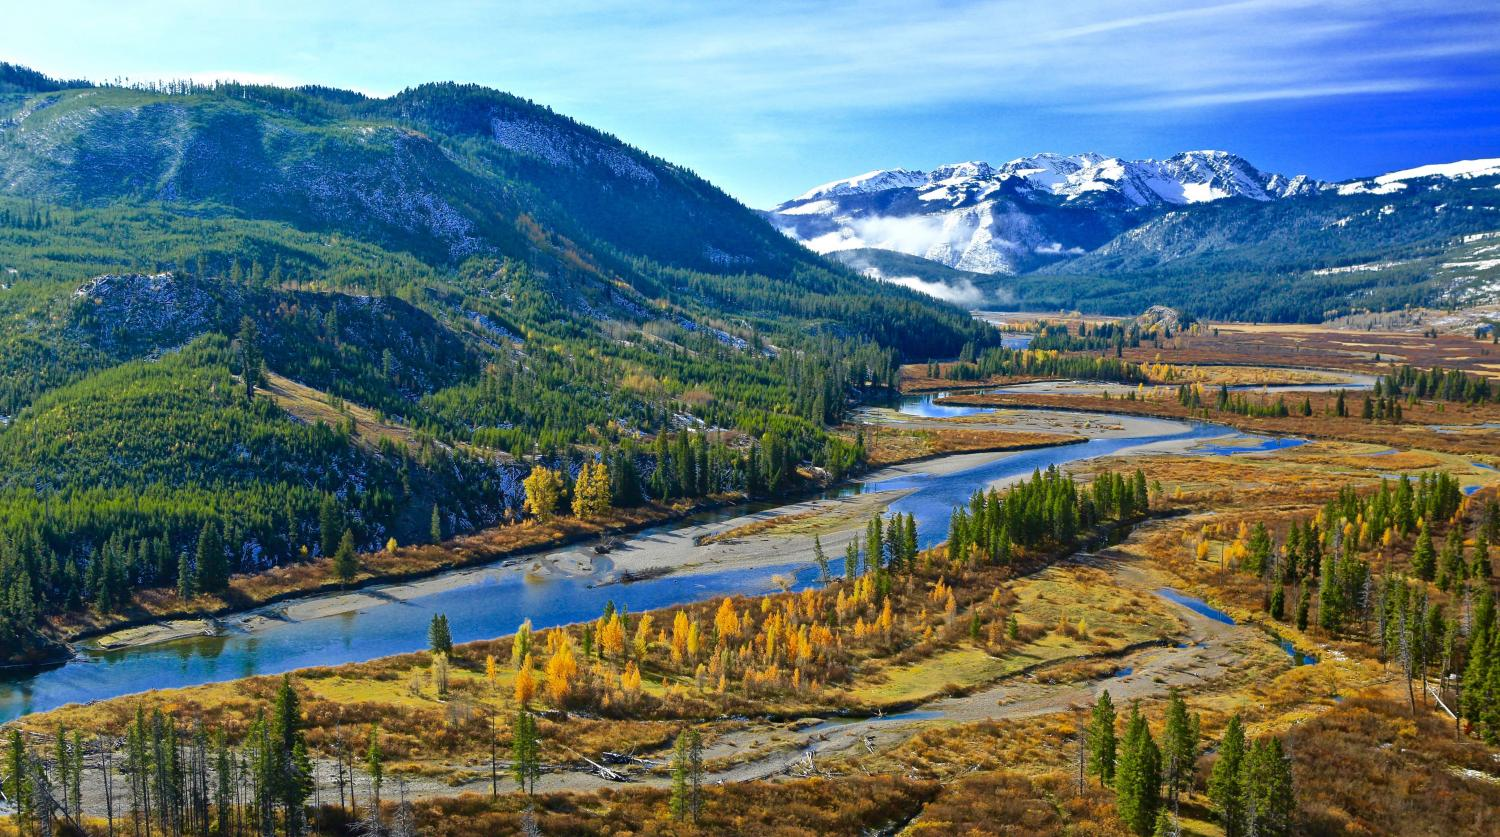 """""""EARLY MORNING- EARLY FALL"""" YELLOWSTONE-TETON SOUTHERN BORDER-THIS AREA IS VISUALLY MIND BLOWING!"""